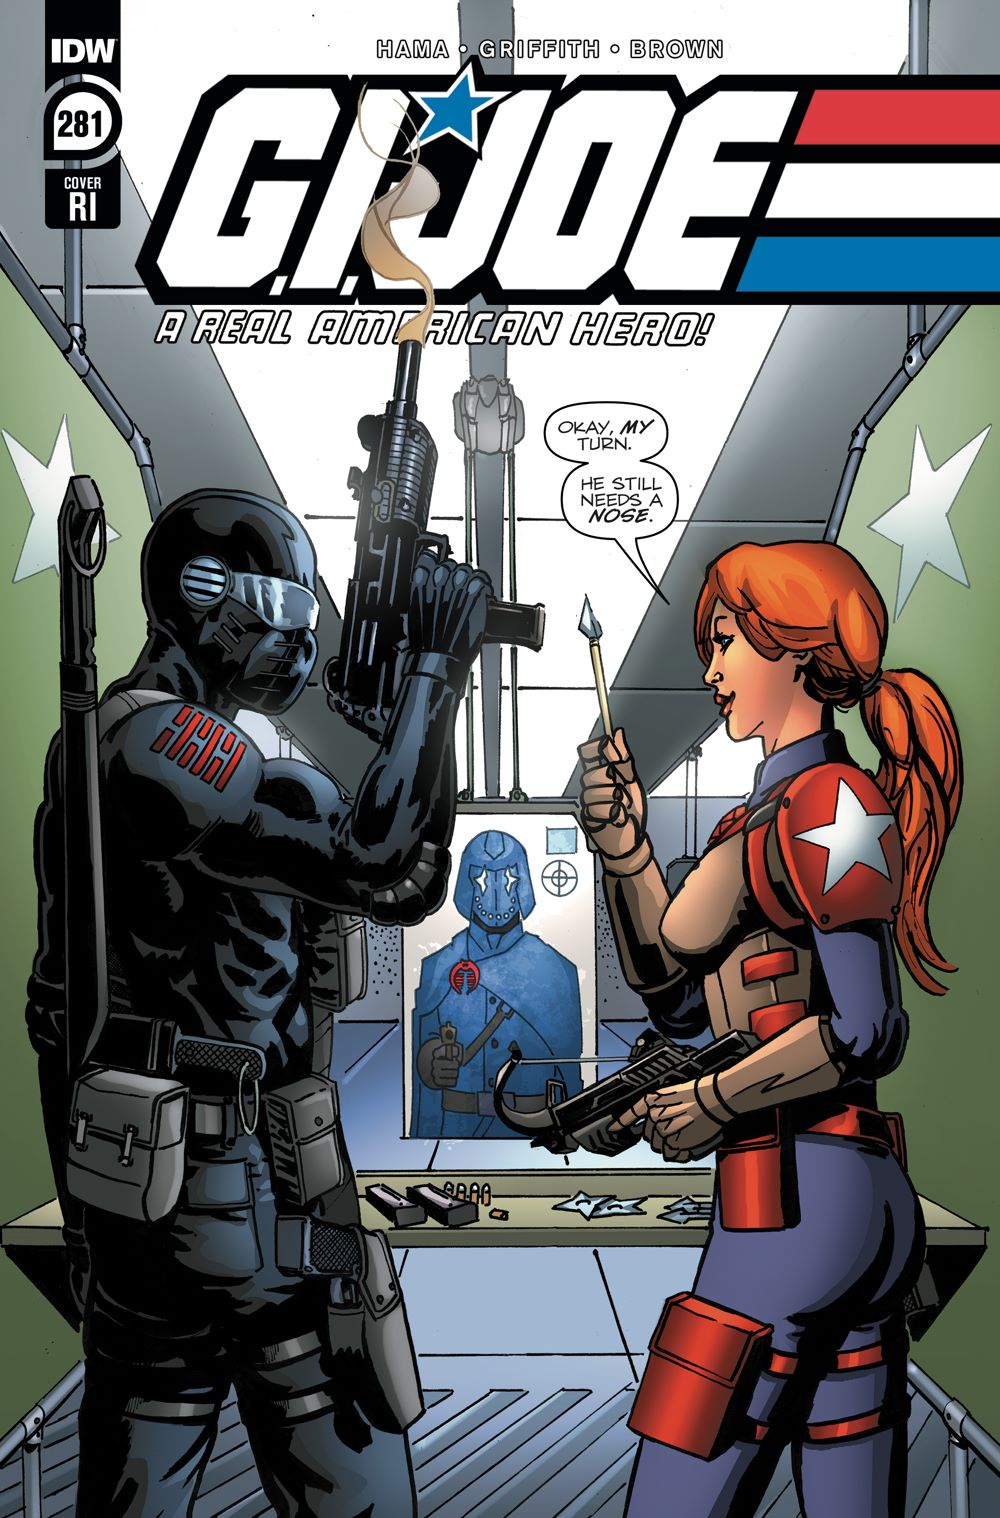 GIJoeRAH281-coverRI ComicList: IDW Publishing New Releases for 05/12/2021